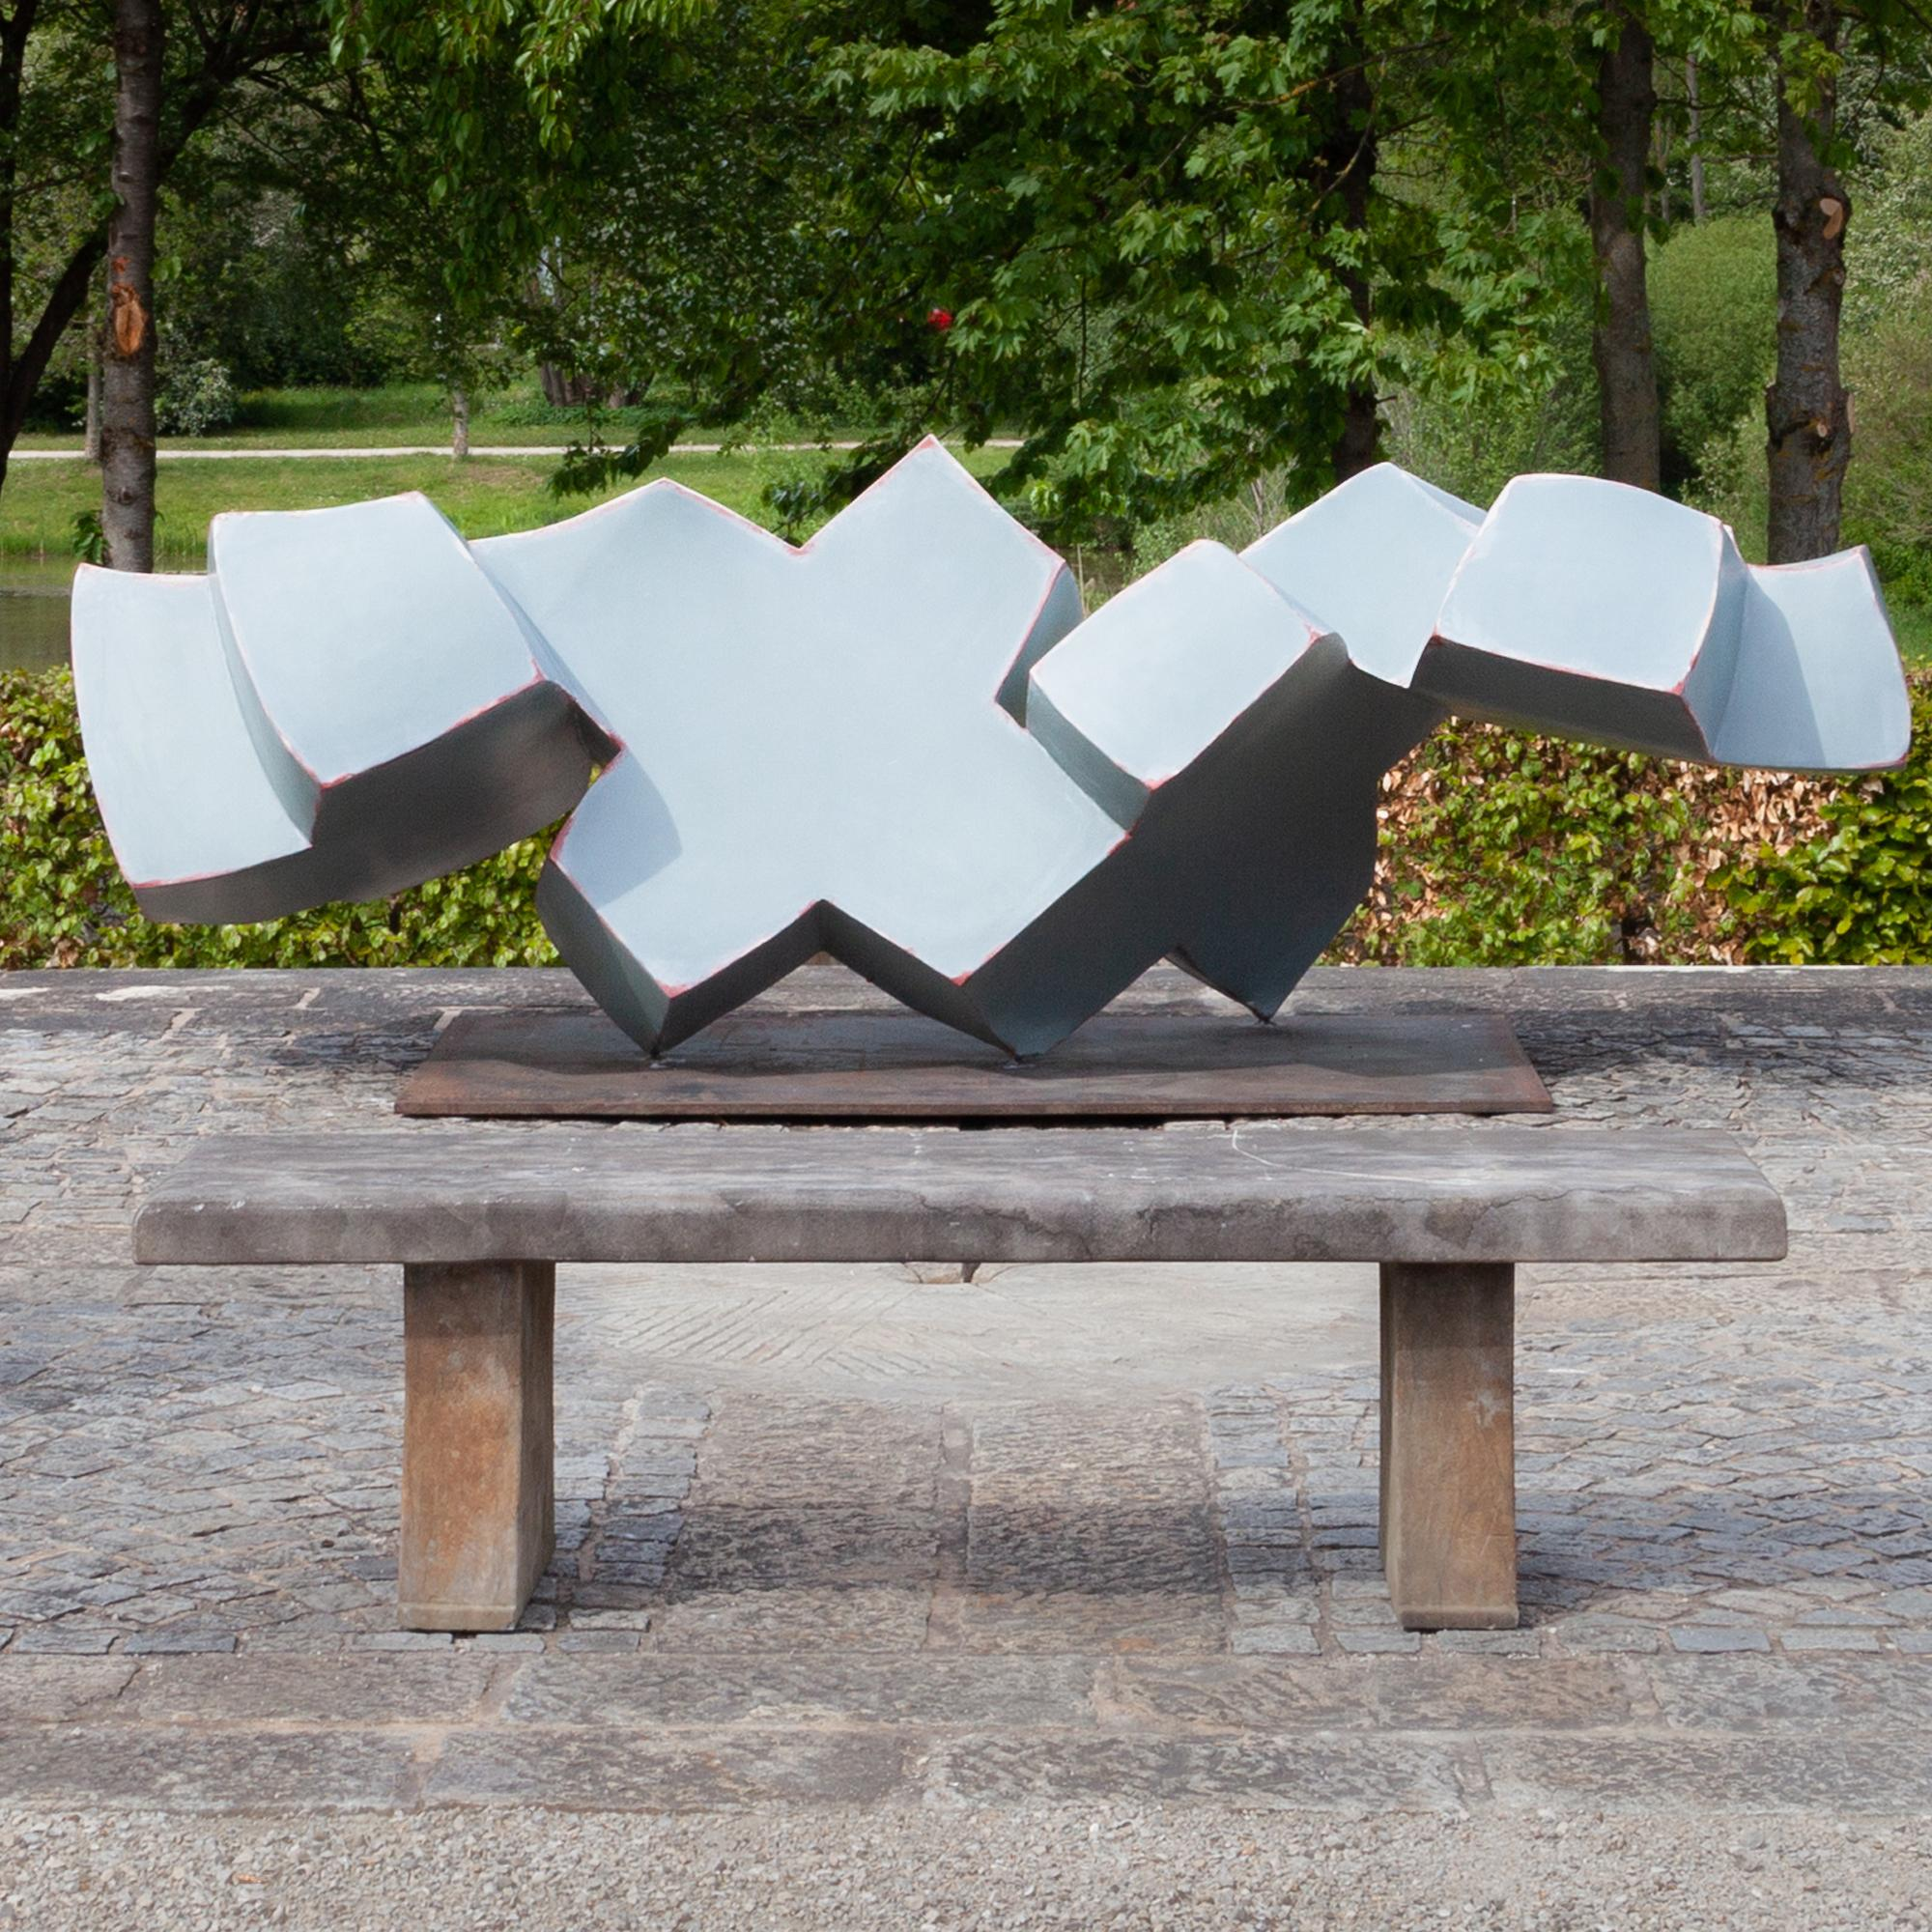 XXXX, Jörg Bach, 2006, Lacquer and Steel, Abstract Sculpture, Germany